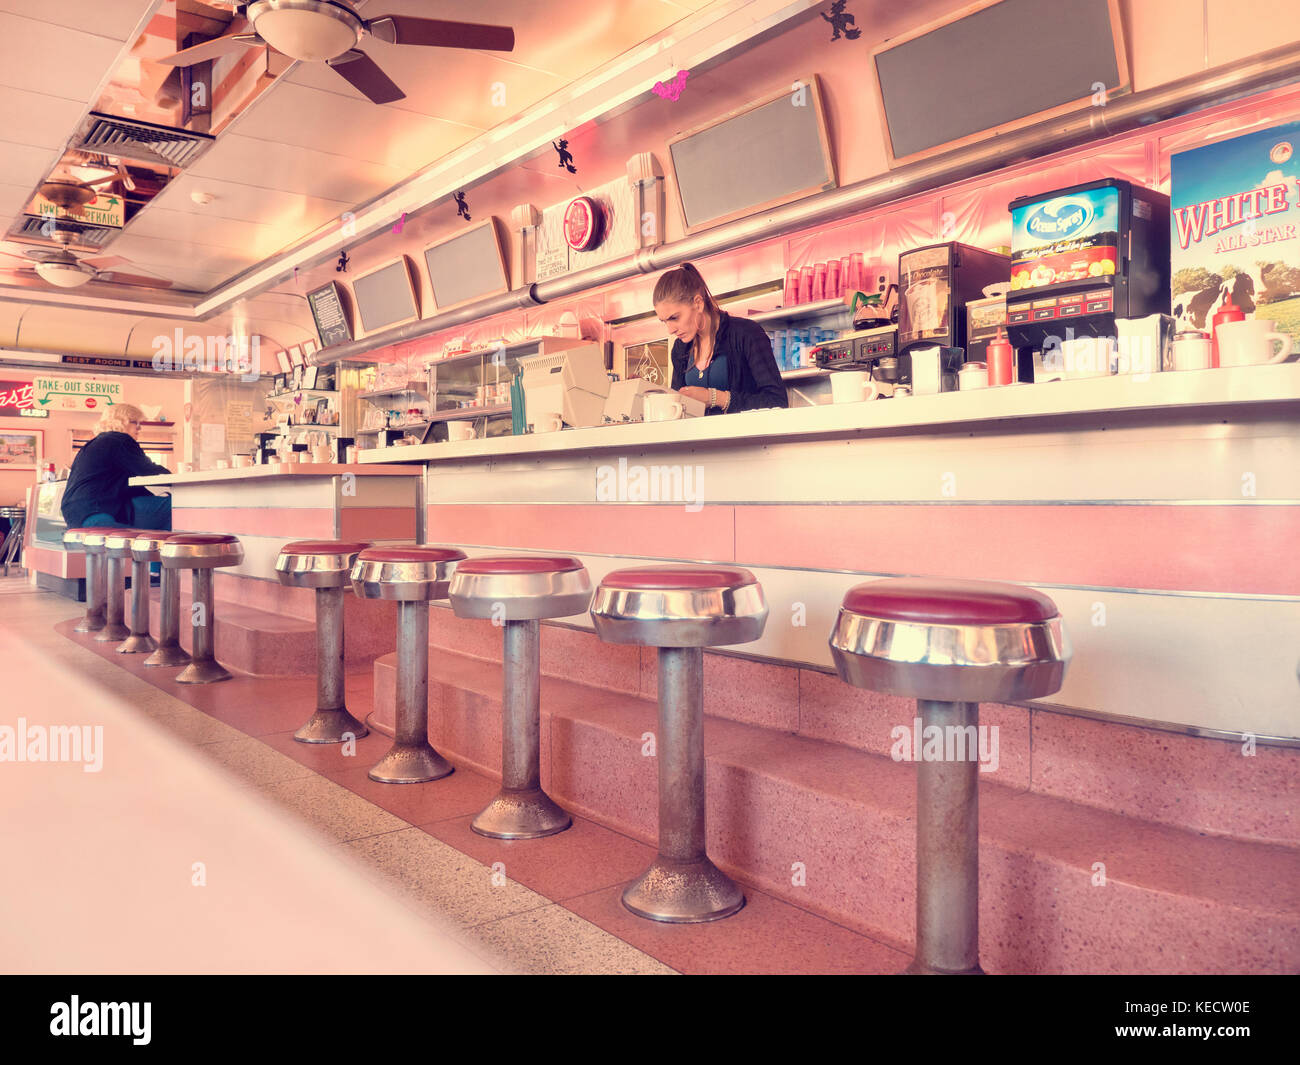 1950s Diner High Resolution Stock Photography And Images Alamy